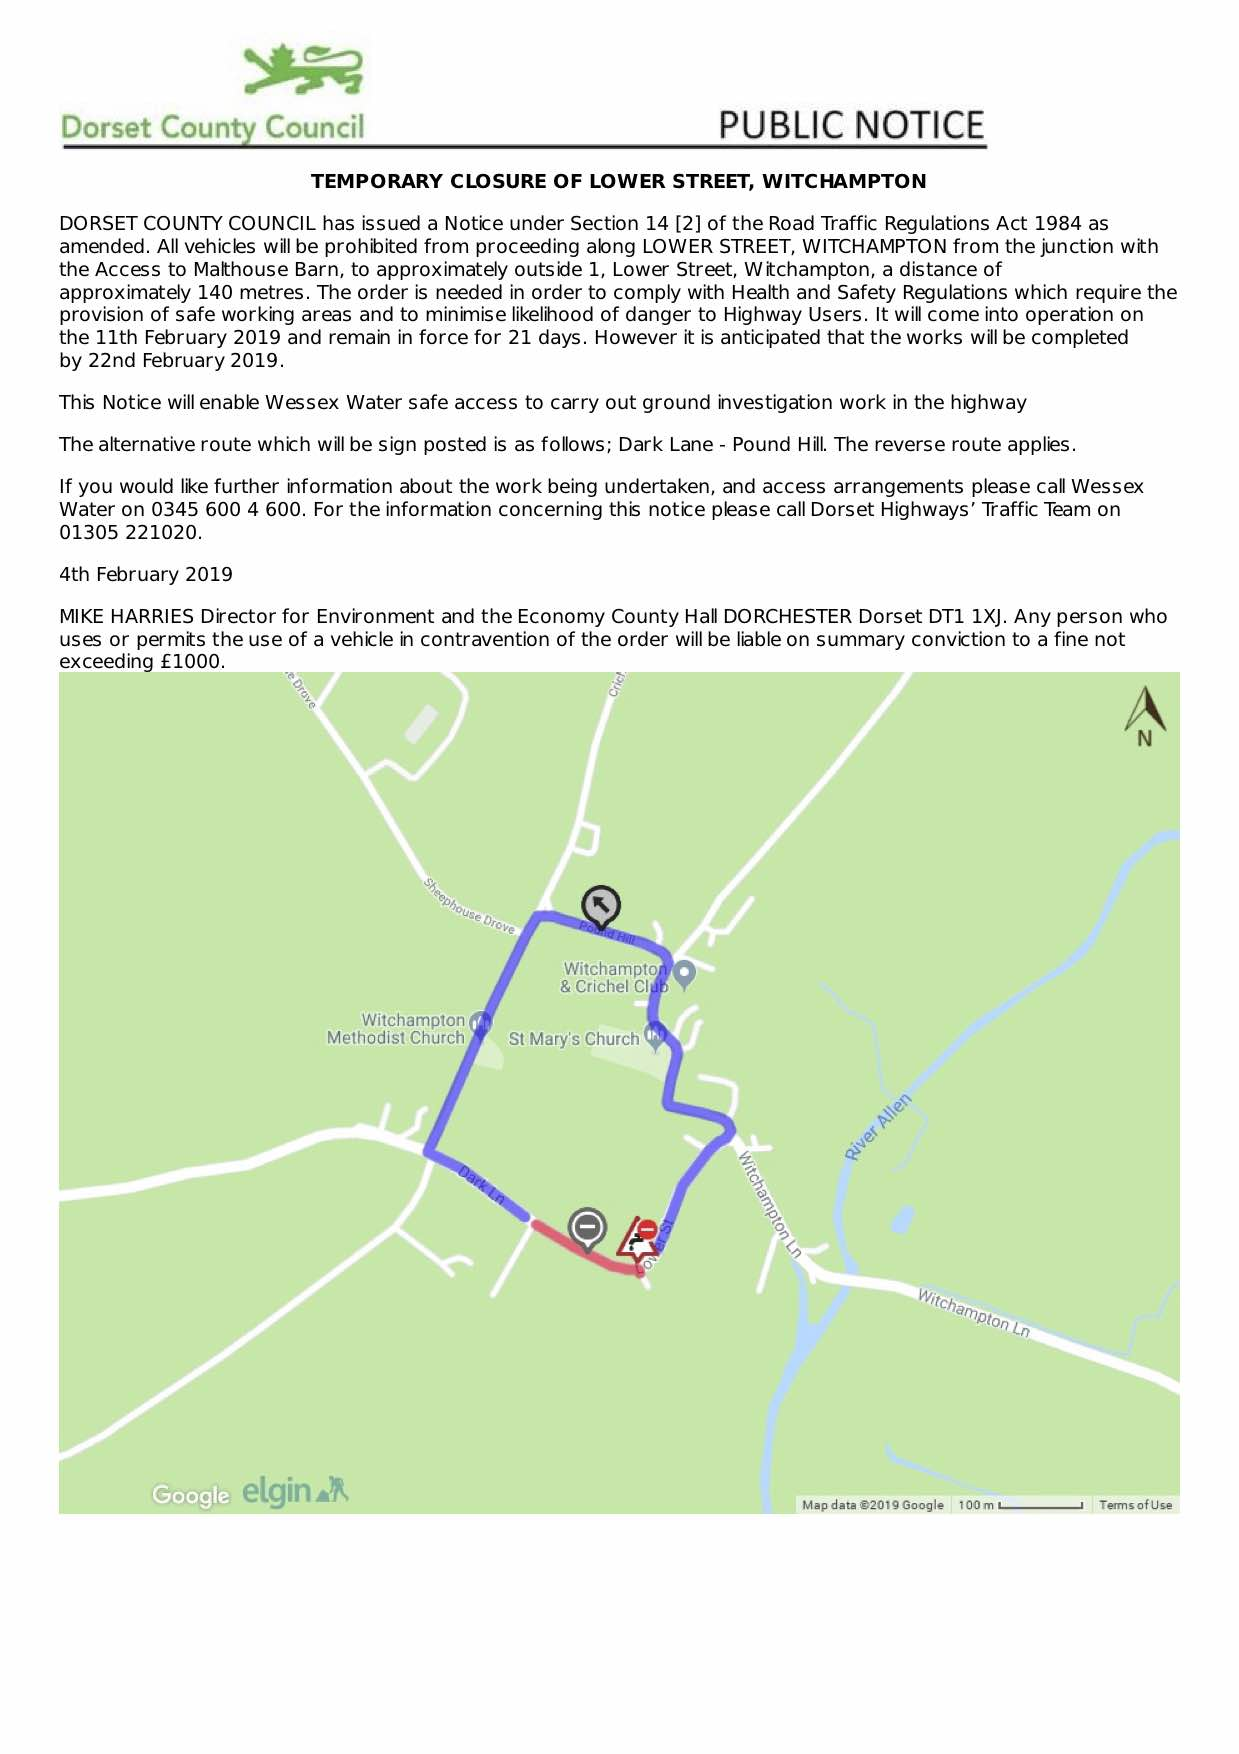 Temporary closure of Lower Street, Witchampton, Feb19